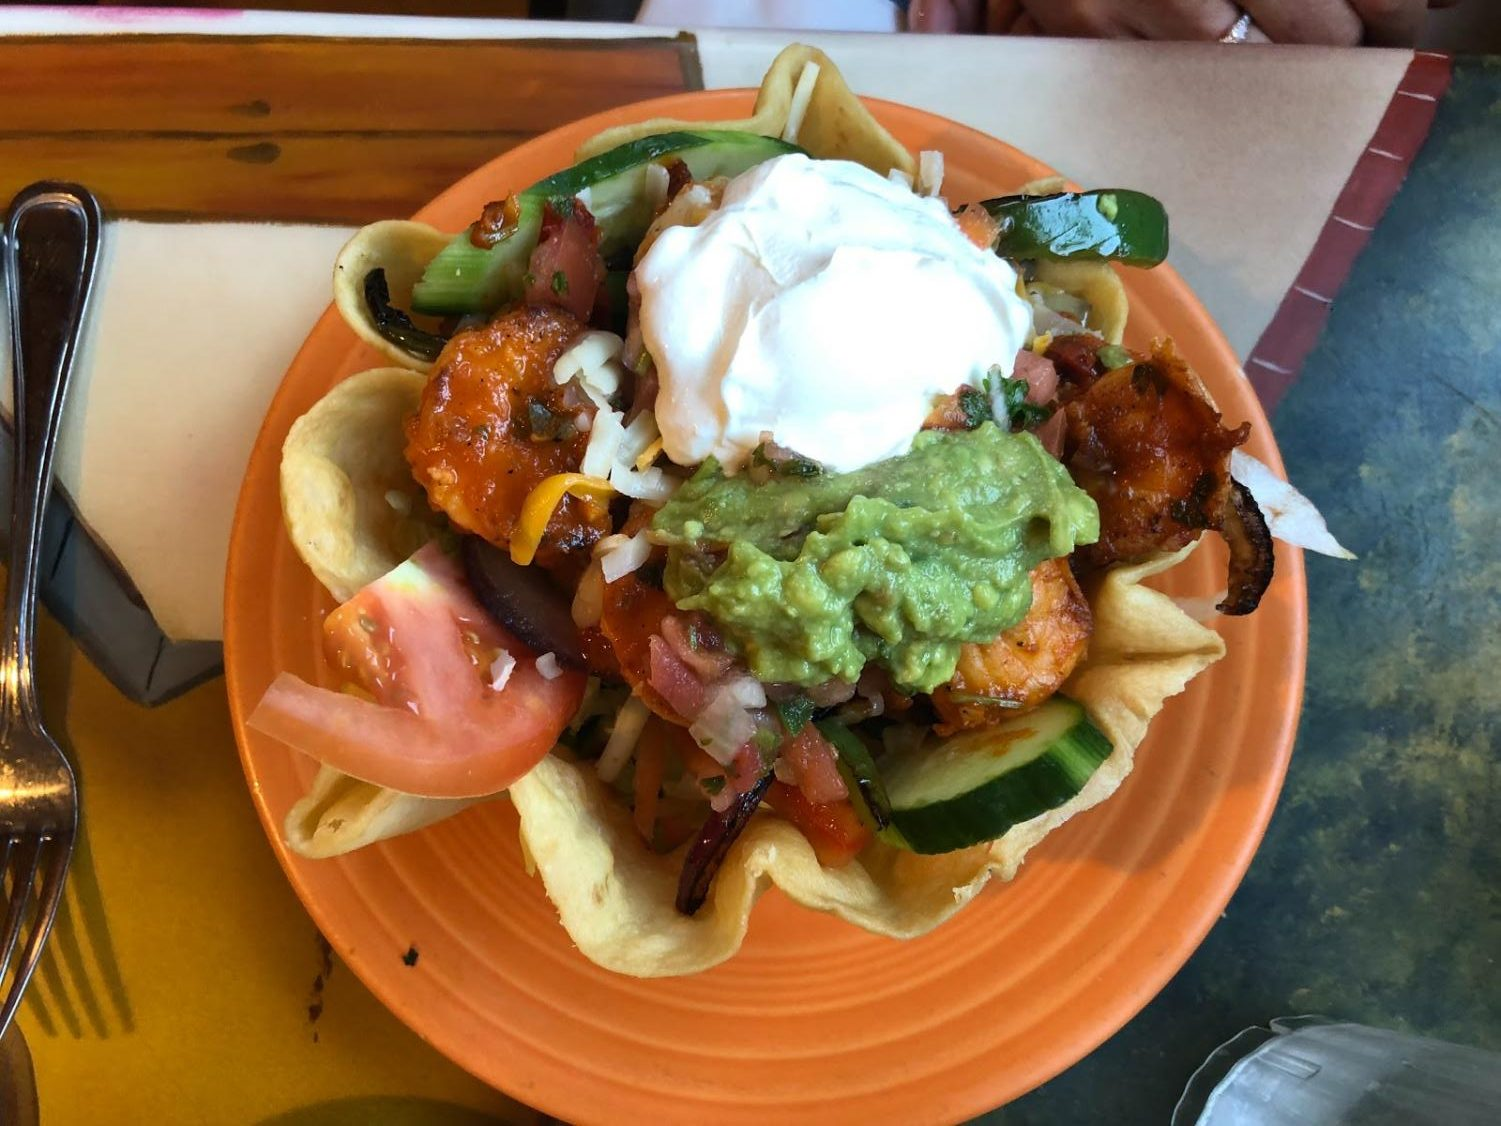 Assistant A&E Editor Amy Sullivan writes that Zarape Restaurant in Marlborough brings delicious Mexican food, like the shrimp fajita salad ($11.99), in a welcoming environment.